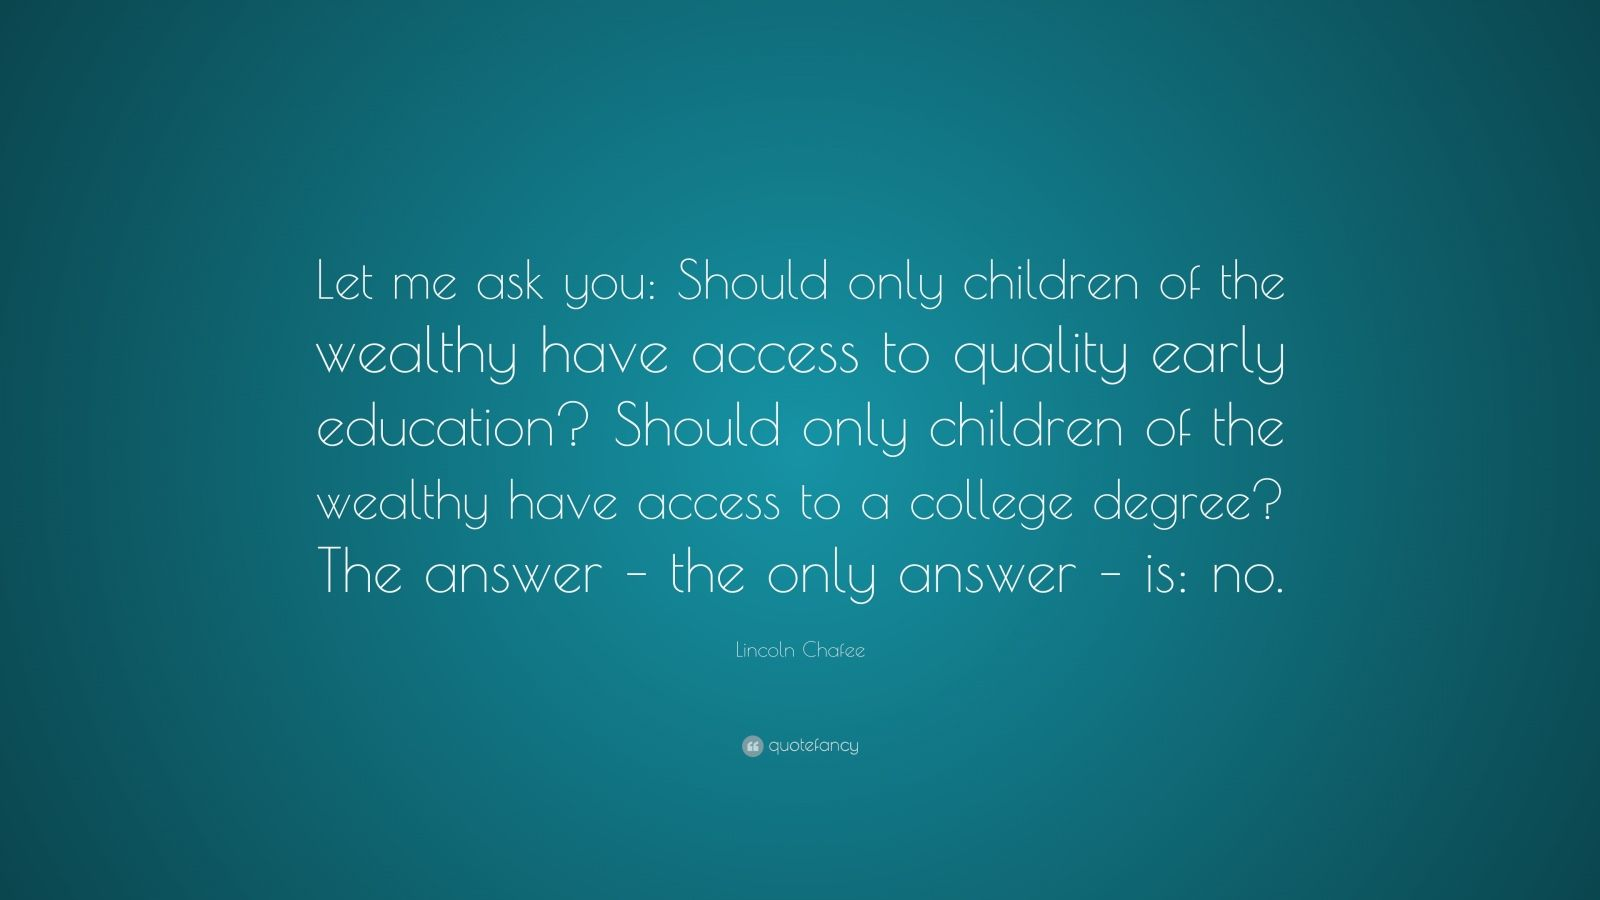 """Lincoln Chafee Quote: """"Let me ask you: Should only children of the wealthy have access to quality early education? Should only children of the wealthy have access to a college degree? The answer – the only answer – is: no."""""""